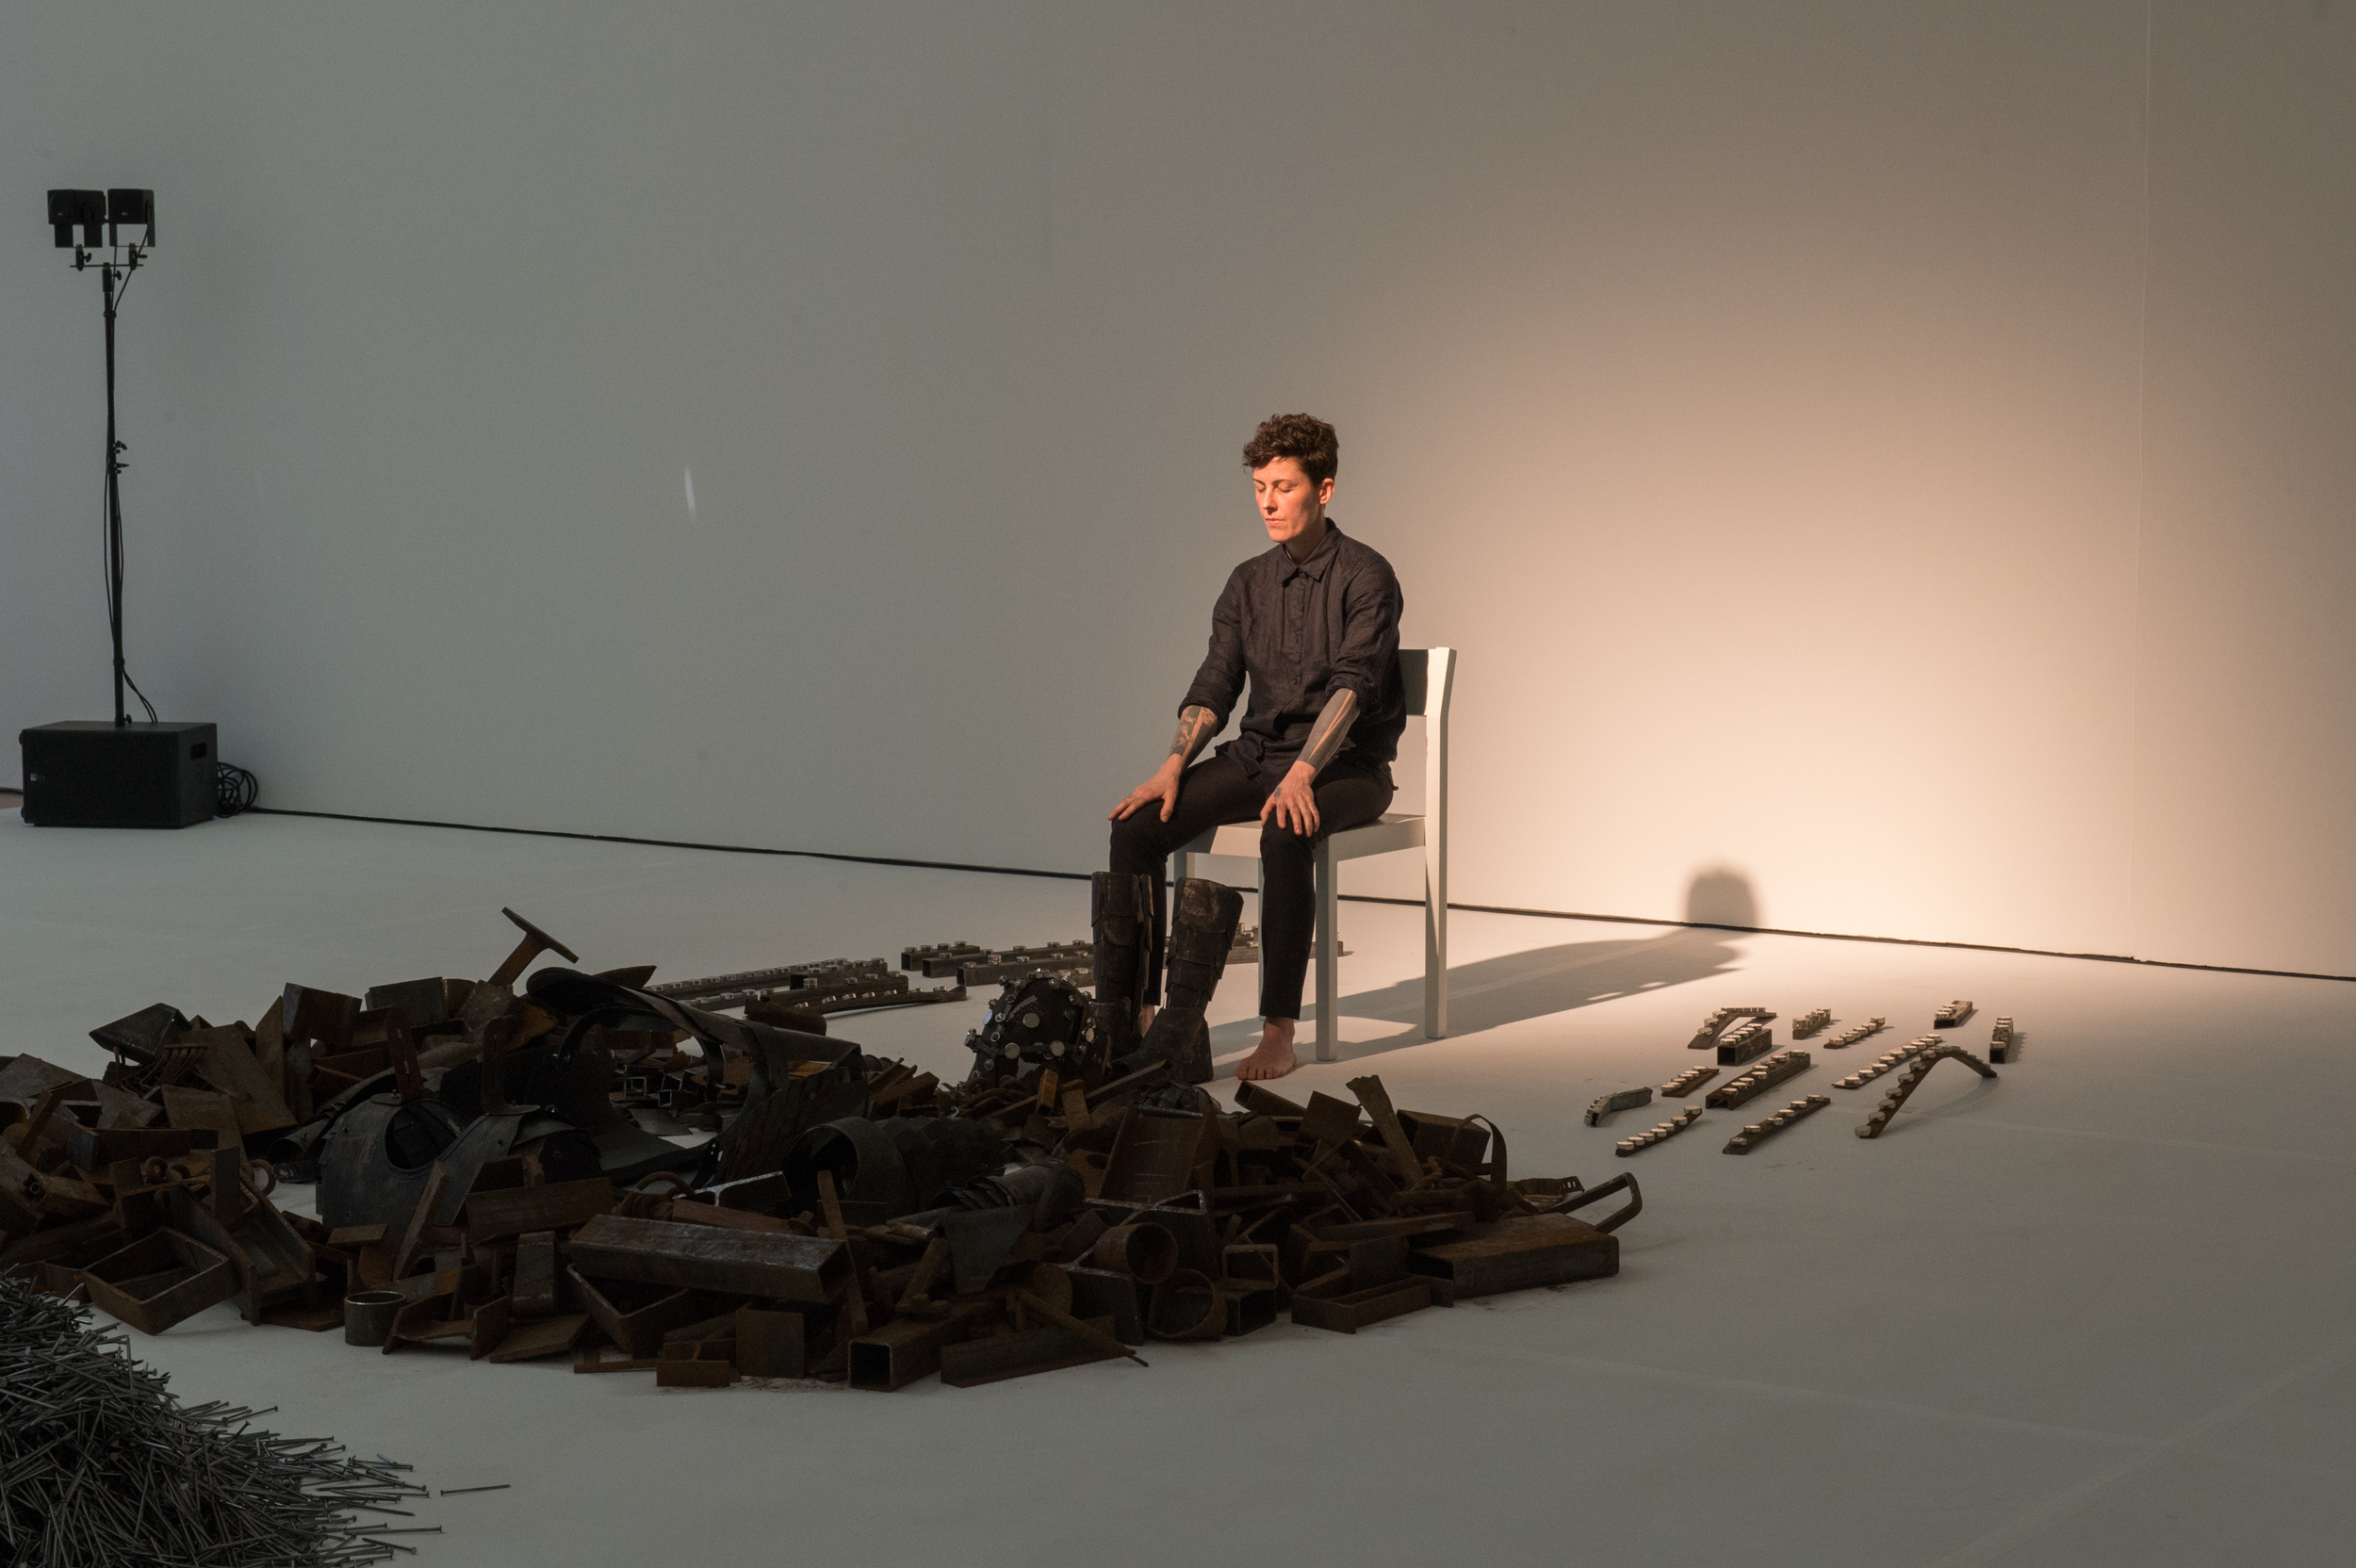 """Paula Garcia performing """"#8 (Noise Body Series)"""" at  The Beyeler Foundation in  Basel, Switzerland in 2014. Photograph courtesy of the artist"""